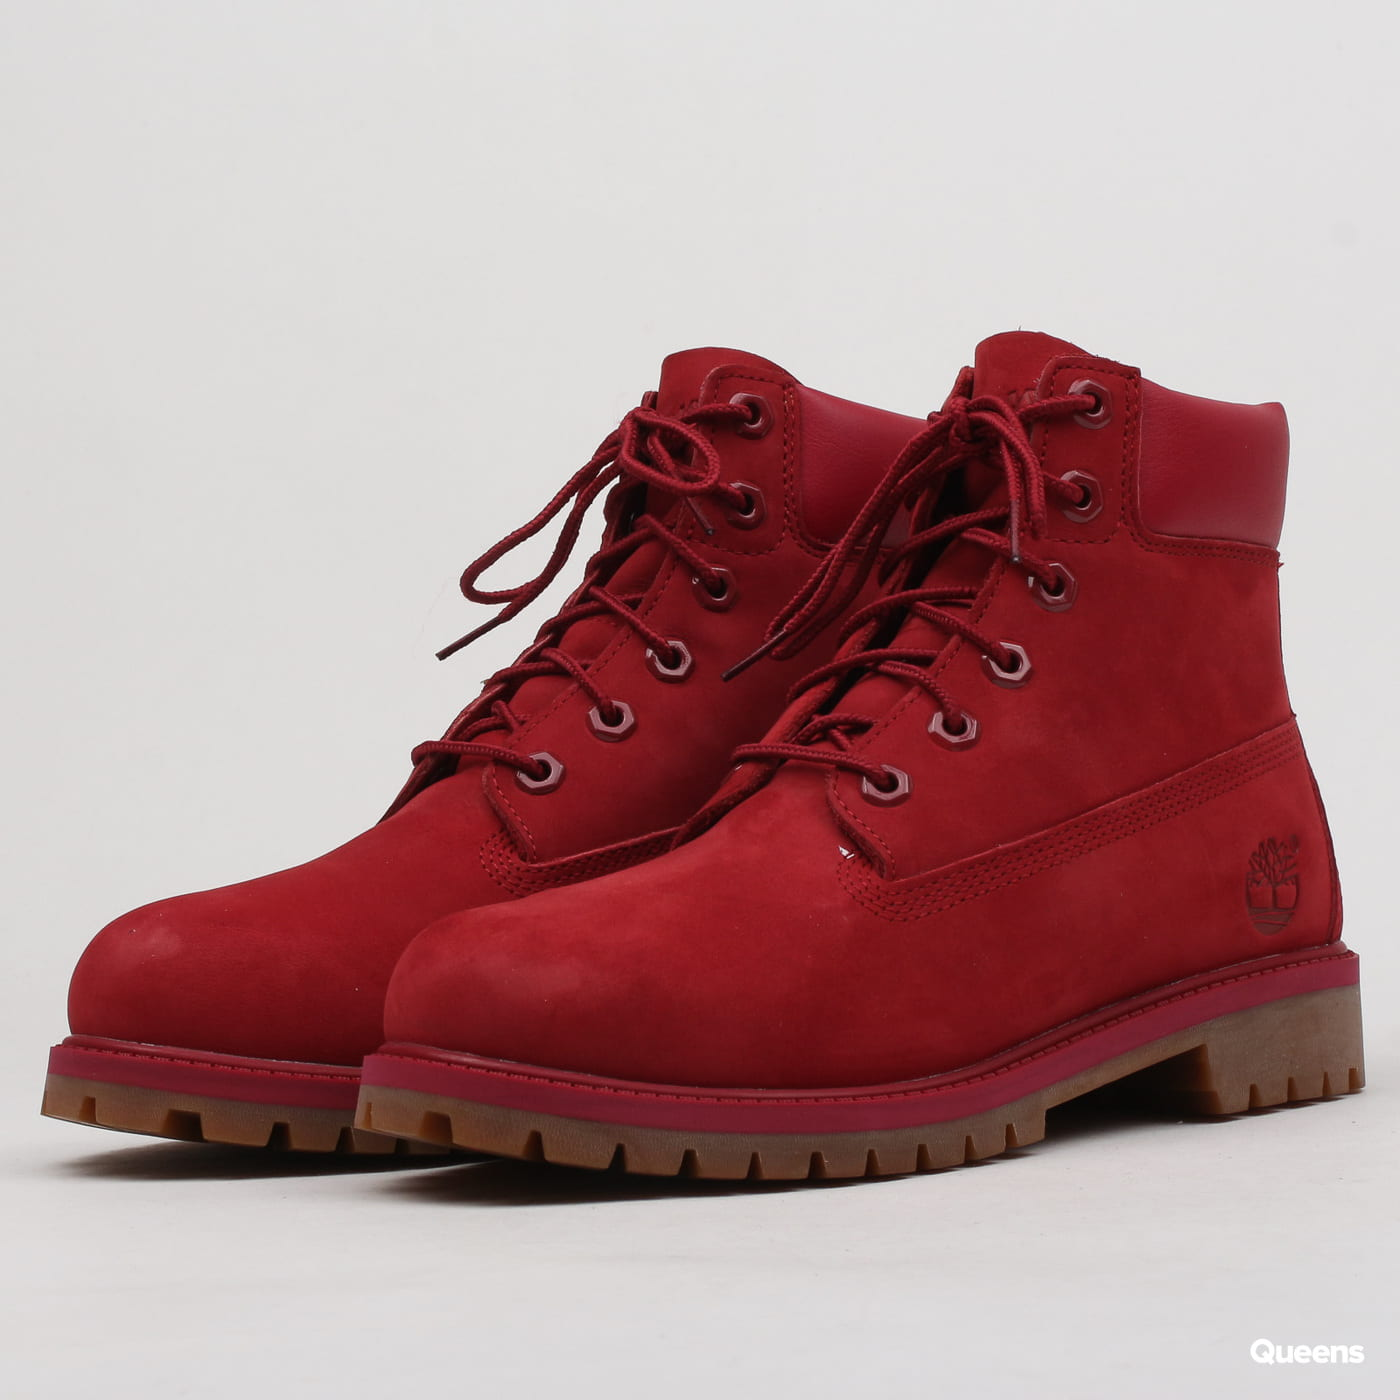 wholesale dealer high quality great deals 2017 Timberland 6 Inch Premium WP Boot red